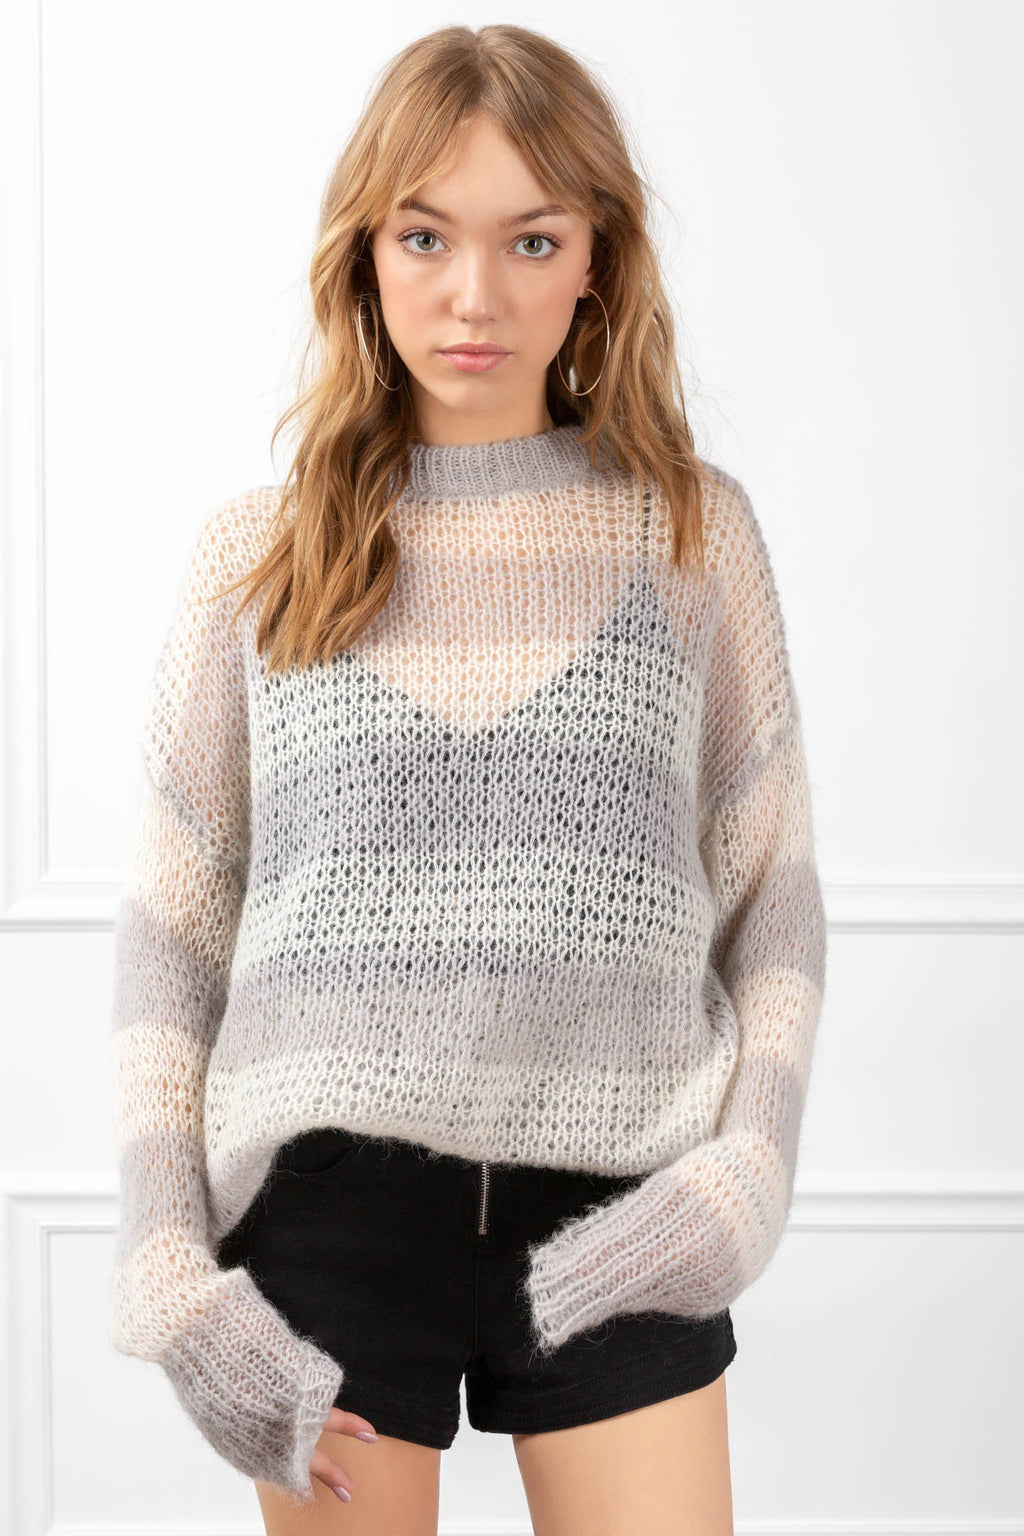 Eliza Sweater Light Grey in Knitwear by J.ING - an L.A based women's fashion line